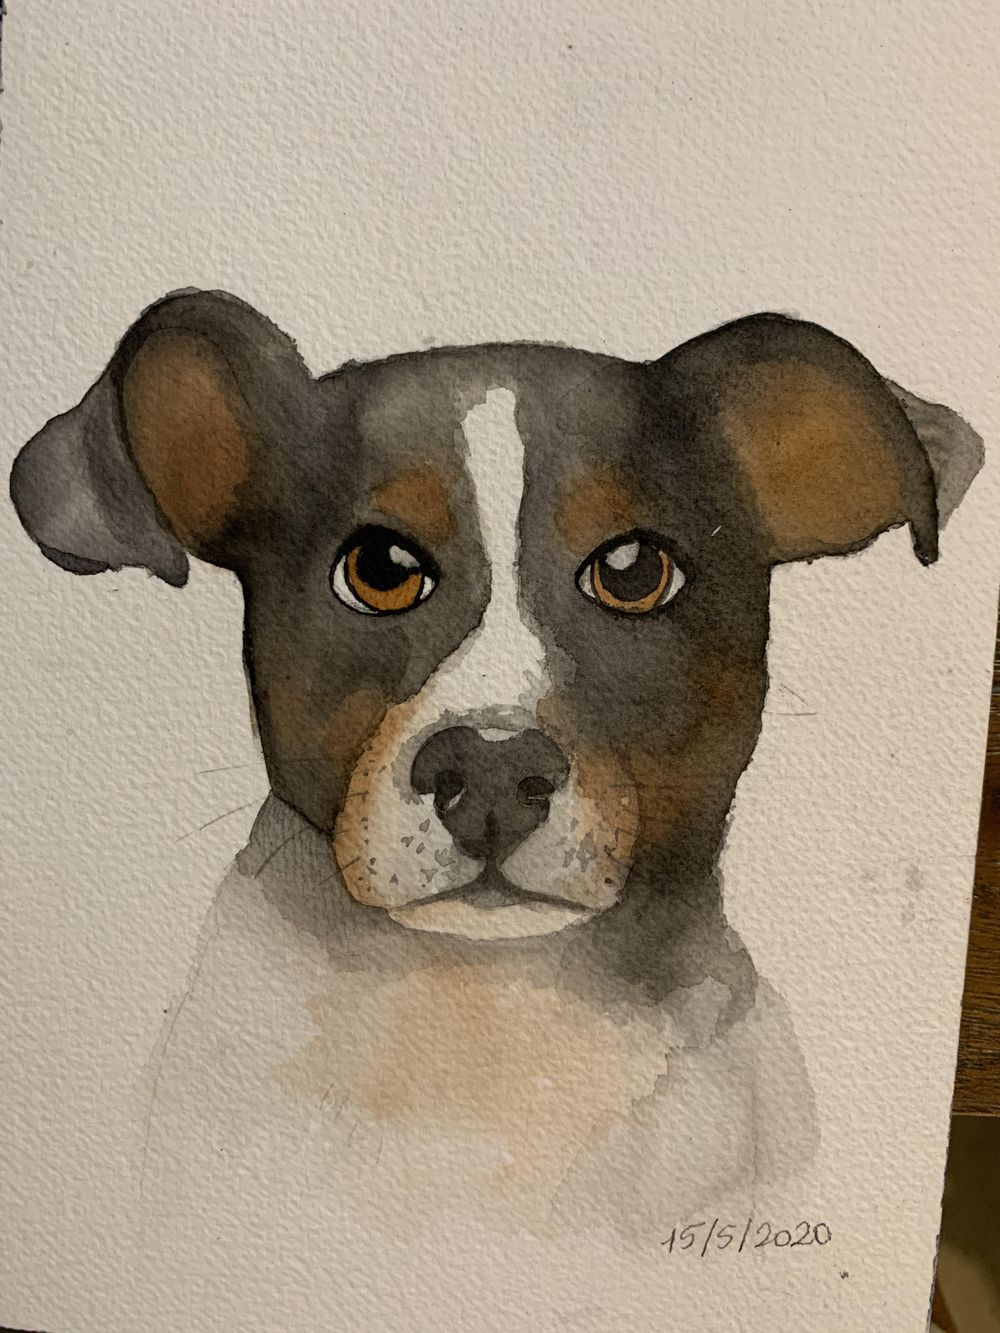 my dogs portraits - image 1 - student project